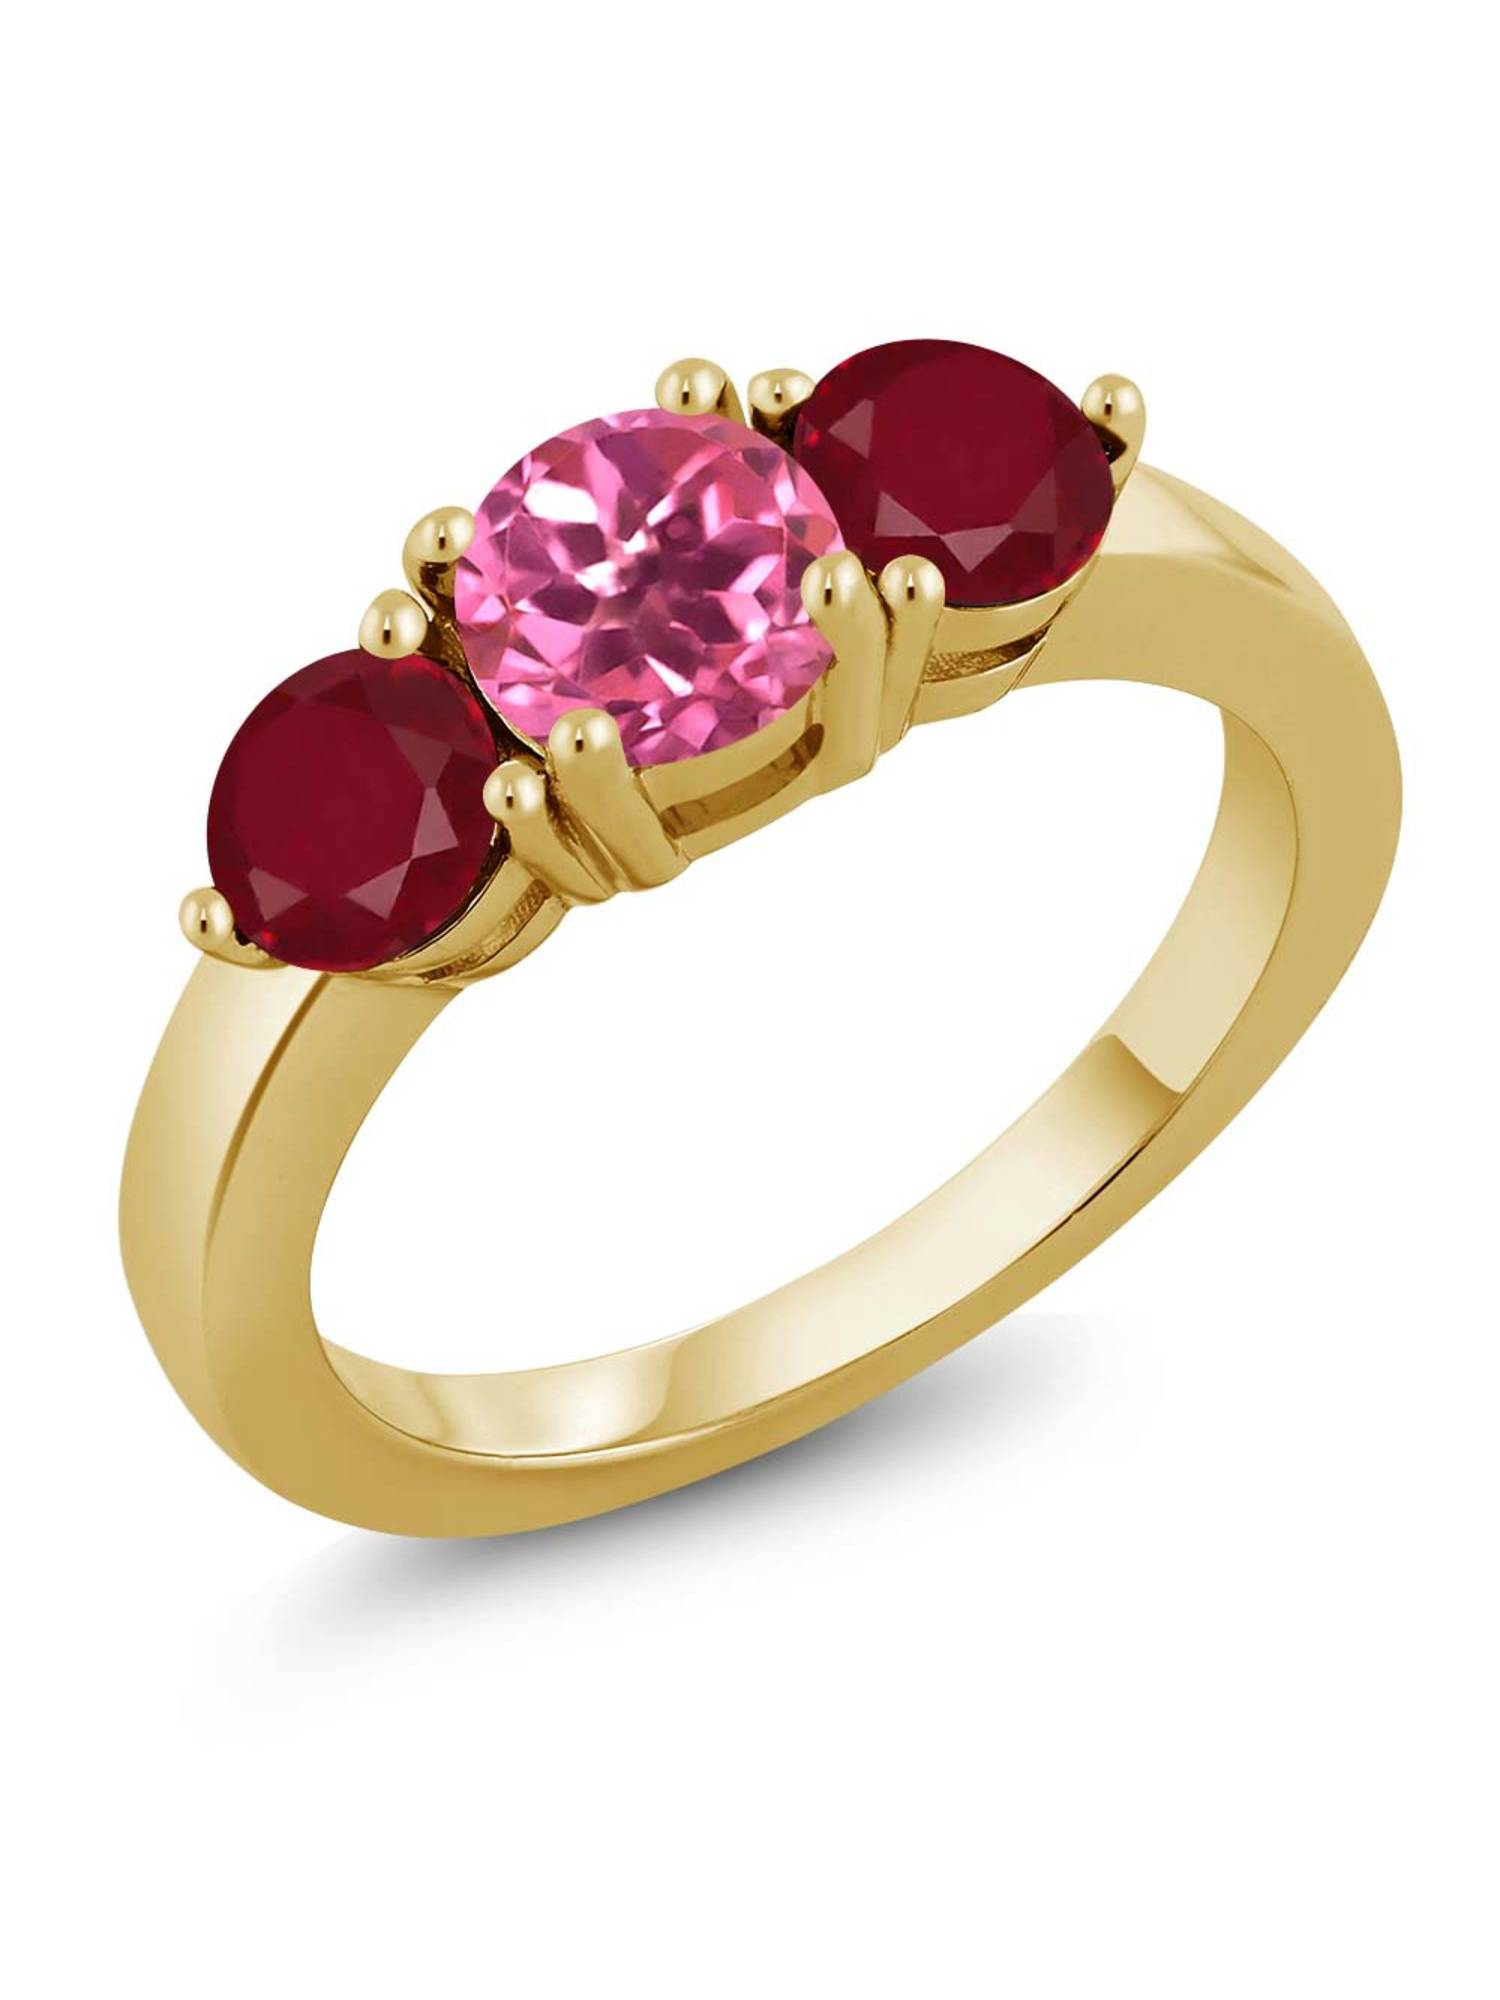 2.12 Ct Round Pink Mystic Topaz Red Ruby 18K Yellow Gold Plated Silver Ring by